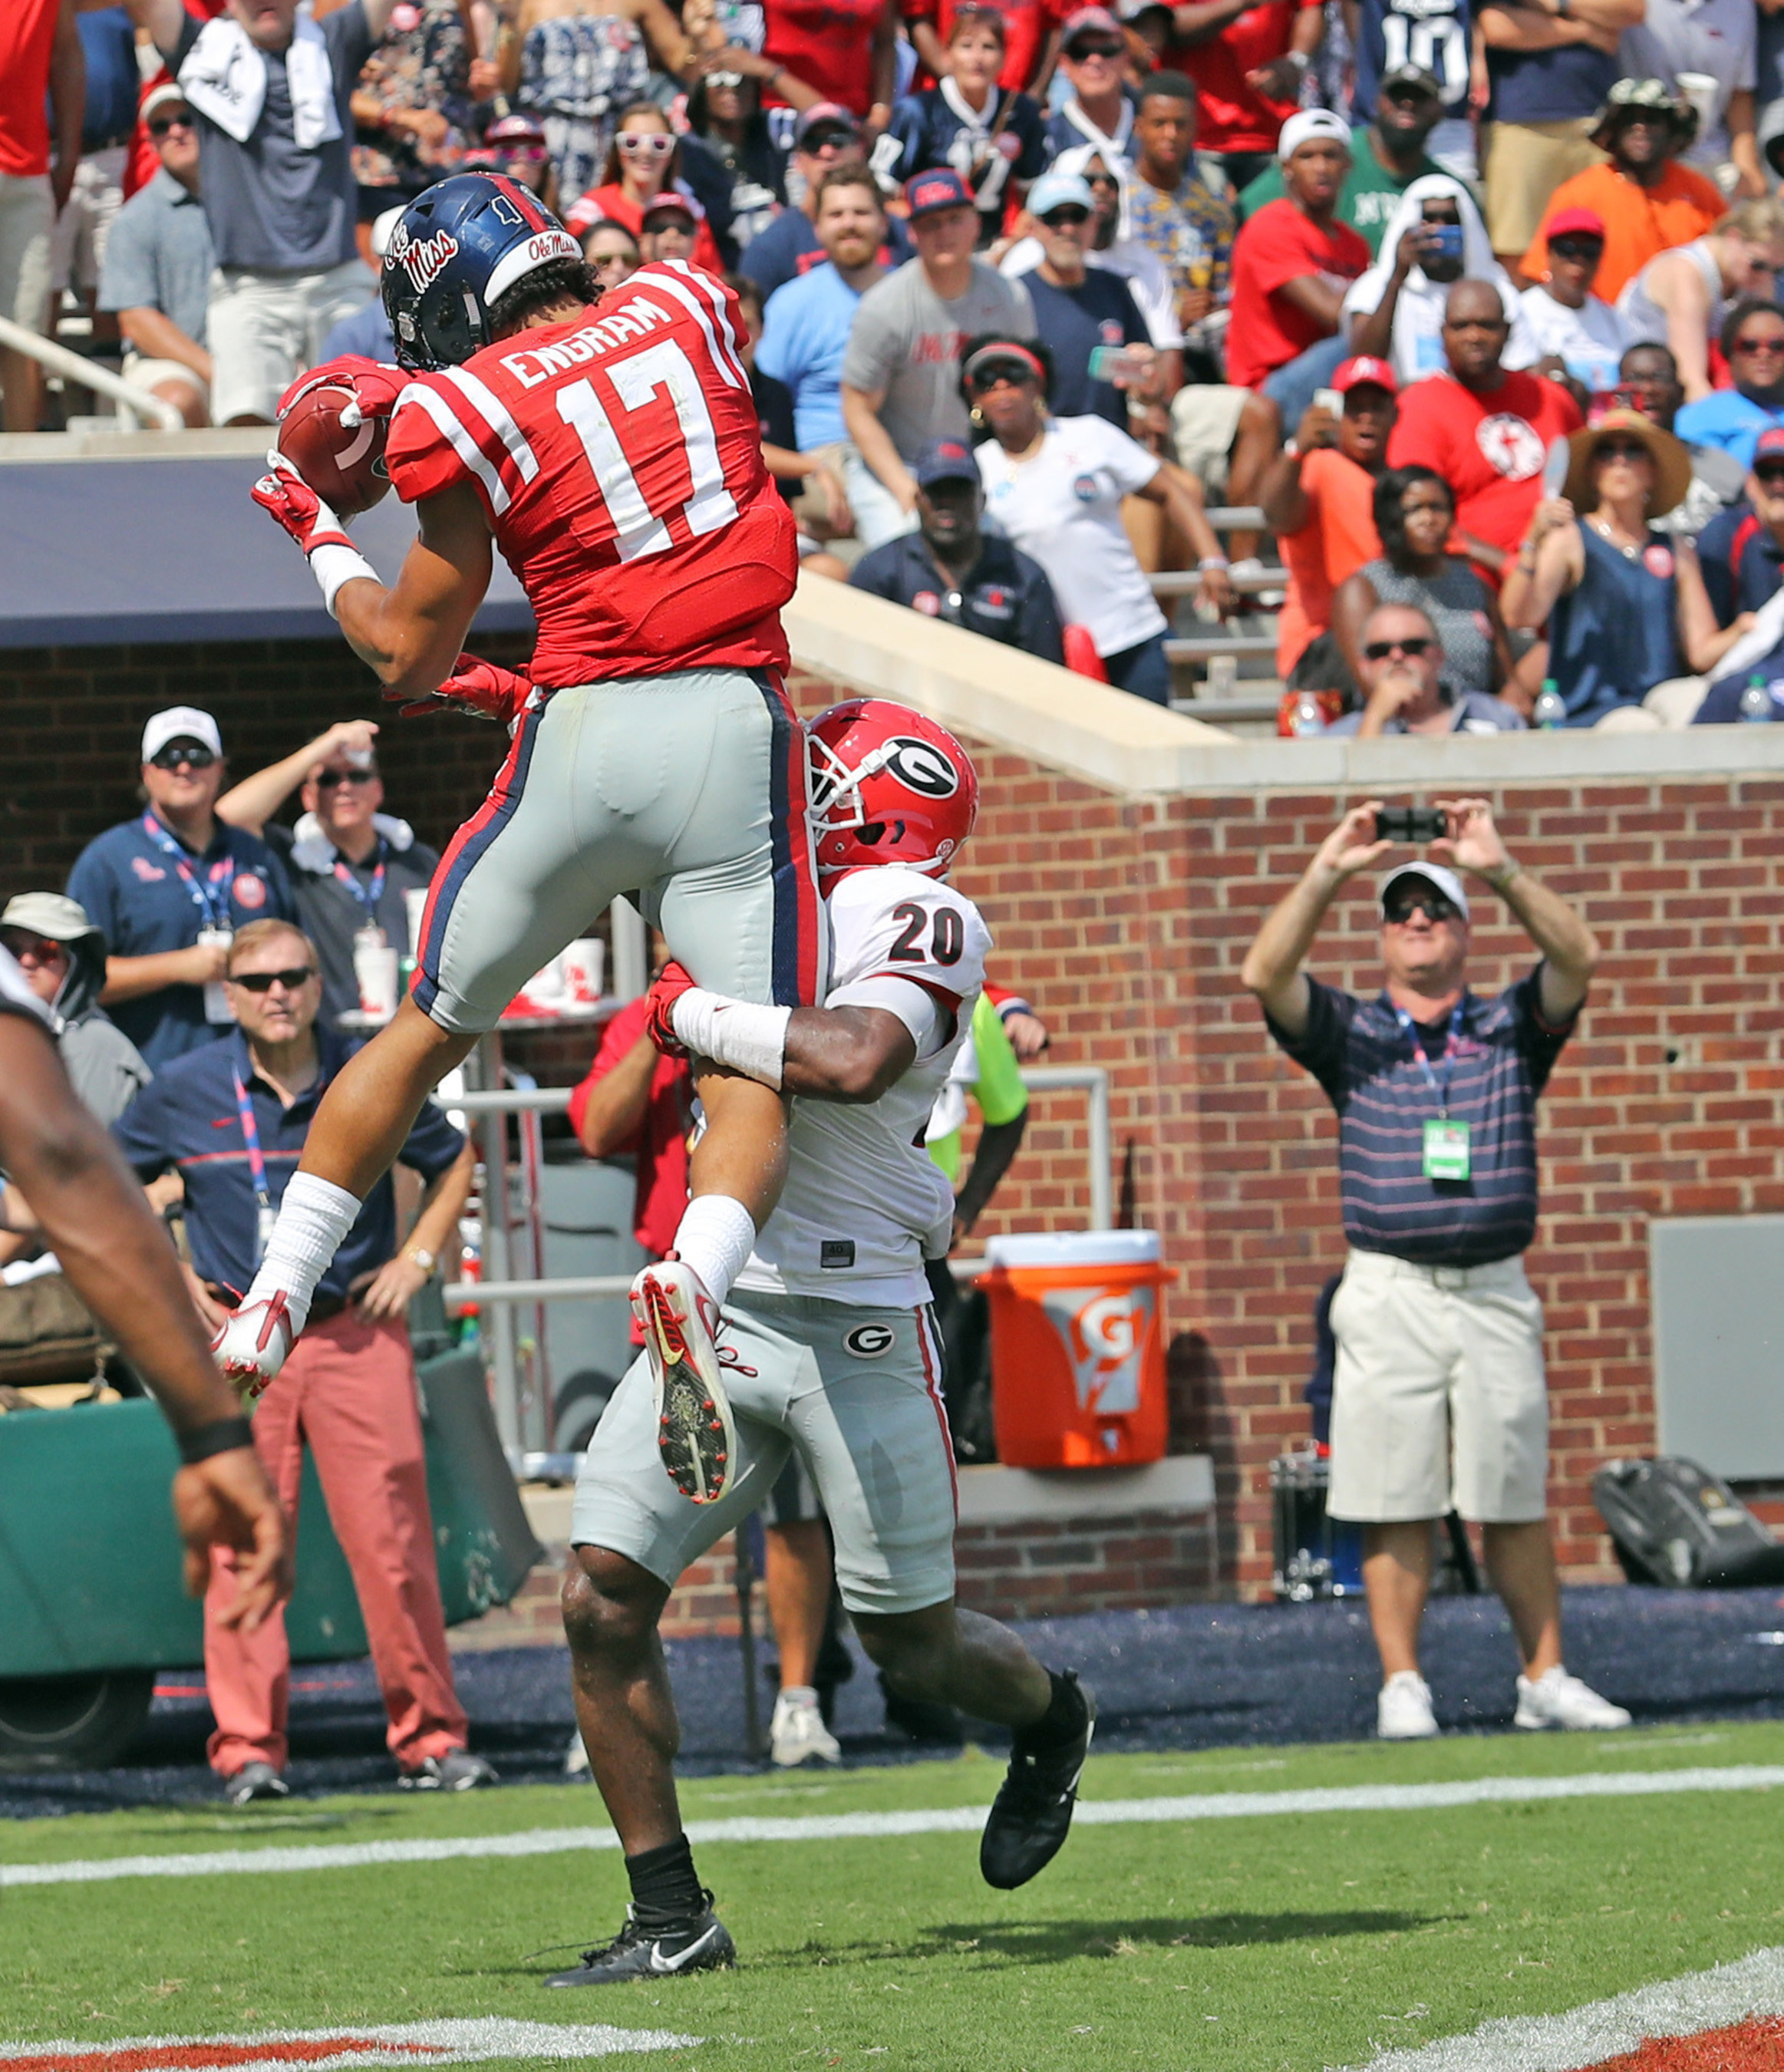 Ole Miss tight end Evan Engram, who led the nation in receiving among college tight ends, won the 2016 C Spire Conerly Trophy, which honors the top college football player in Mississippi. Photo Credit: Ole Miss Athletics